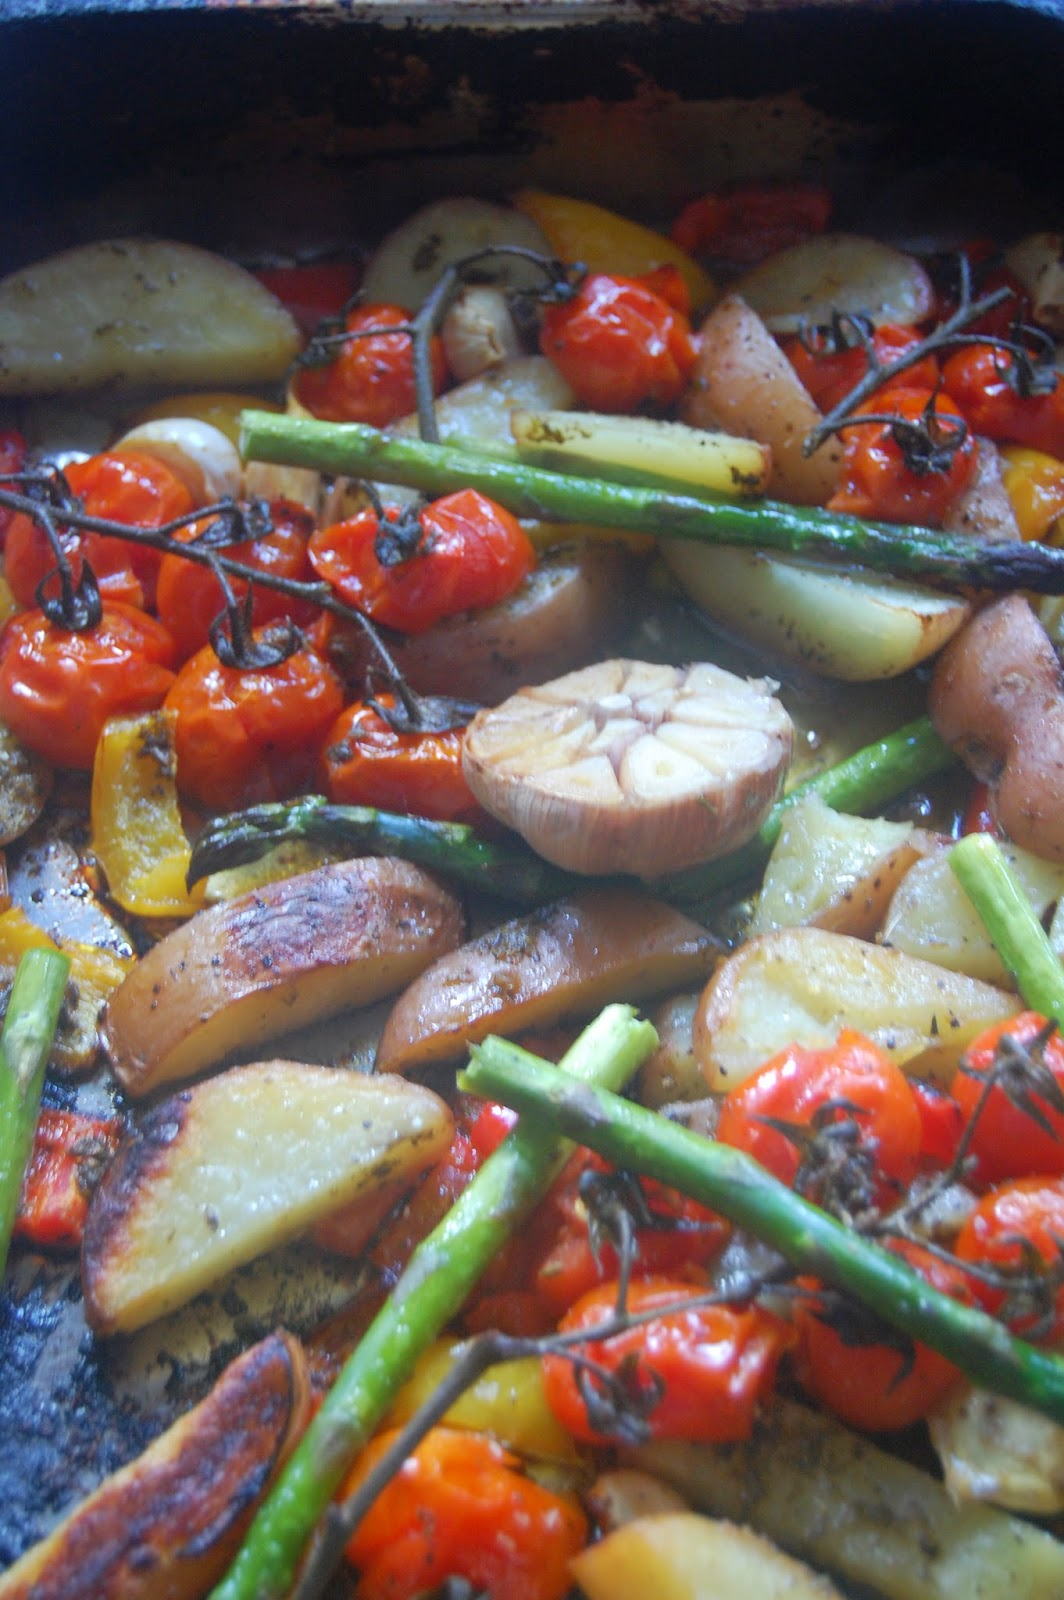 Roasted veg ready to serve